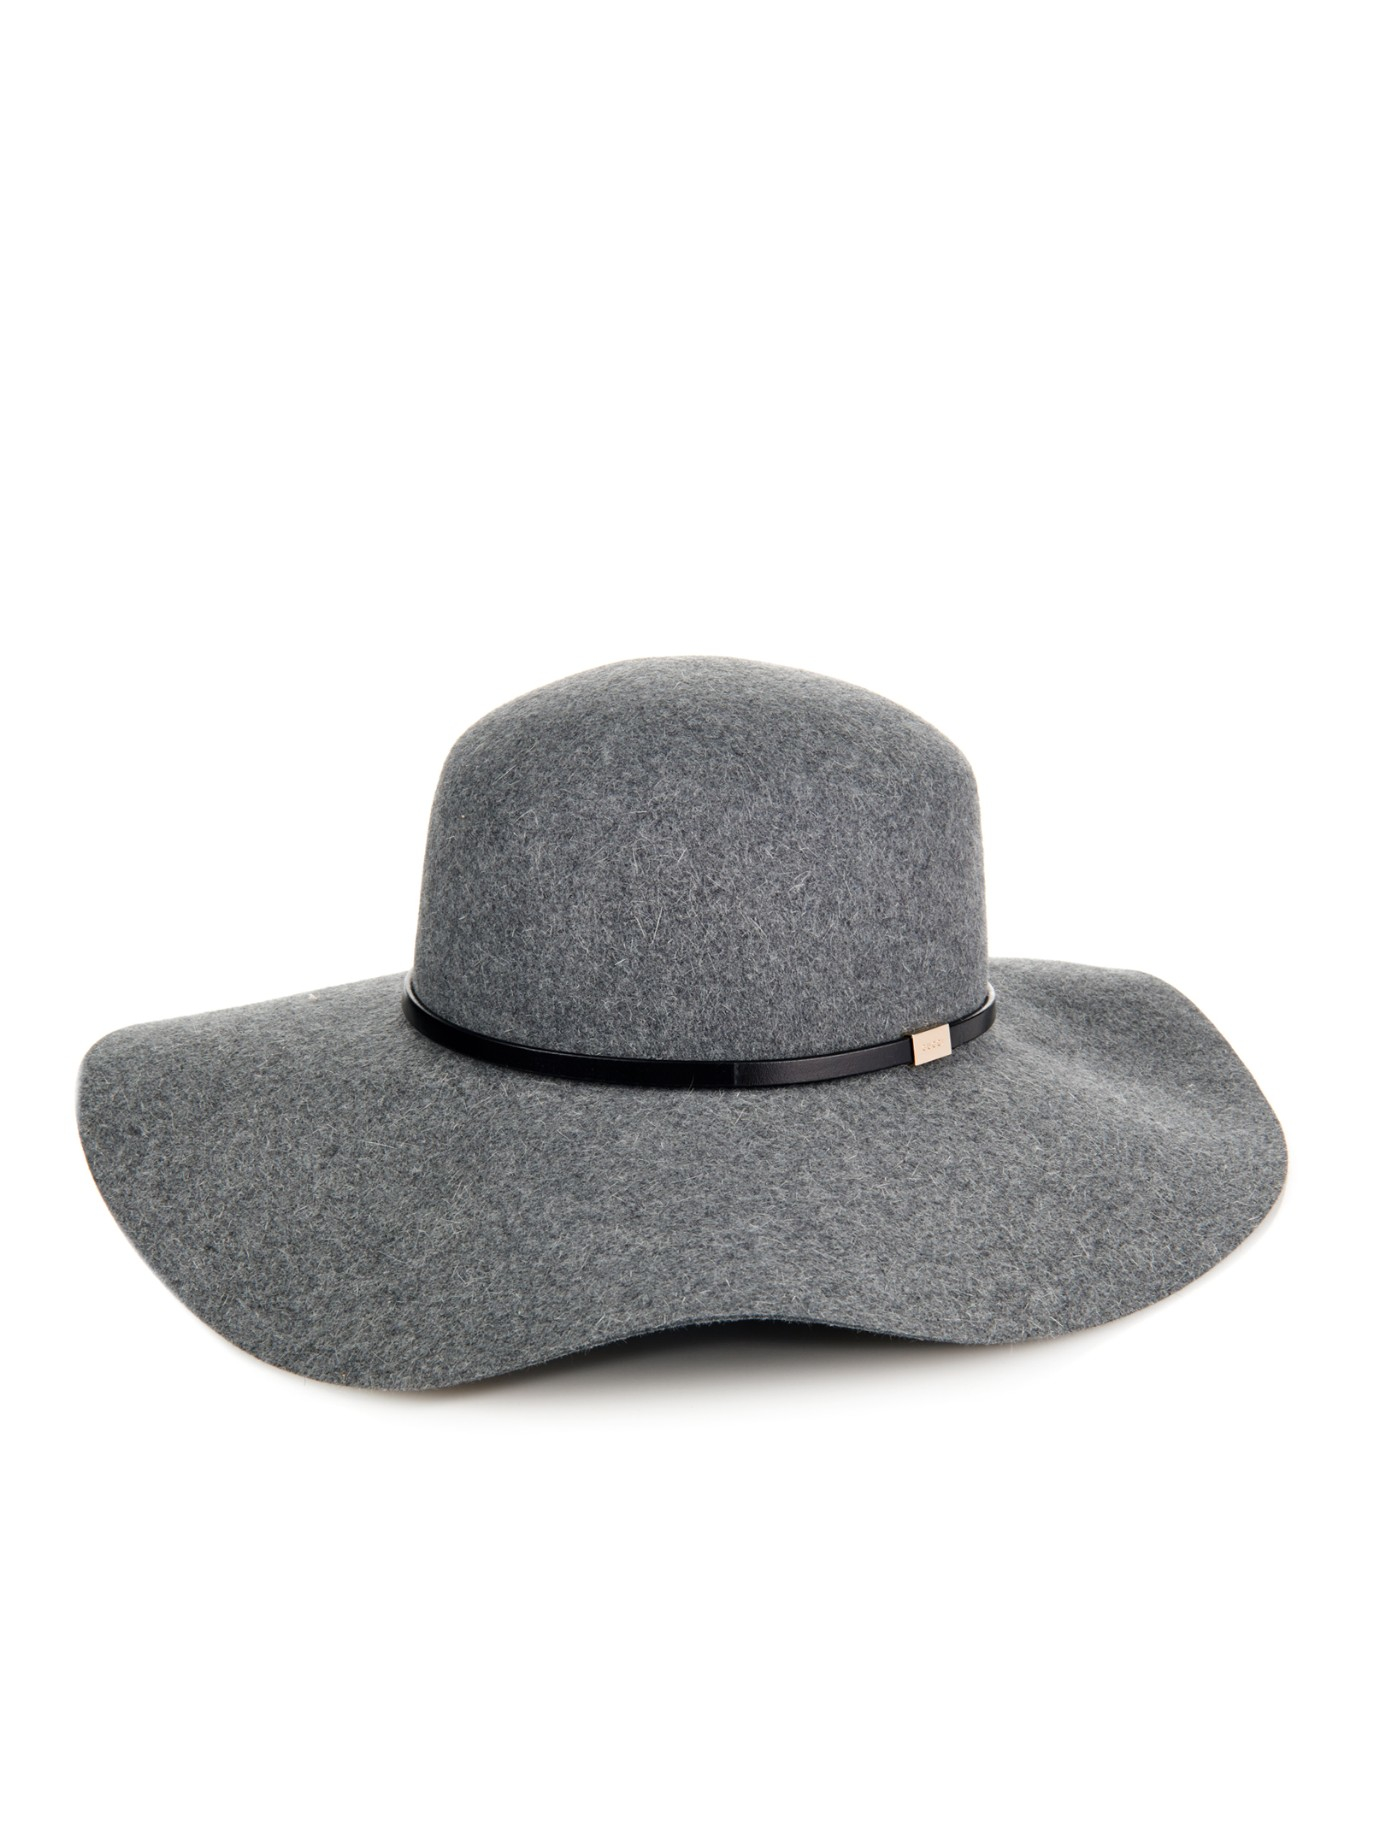 Lyst - Gucci Wide-Brim Fur-Felt Hat in Gray f9a3b24b4dc